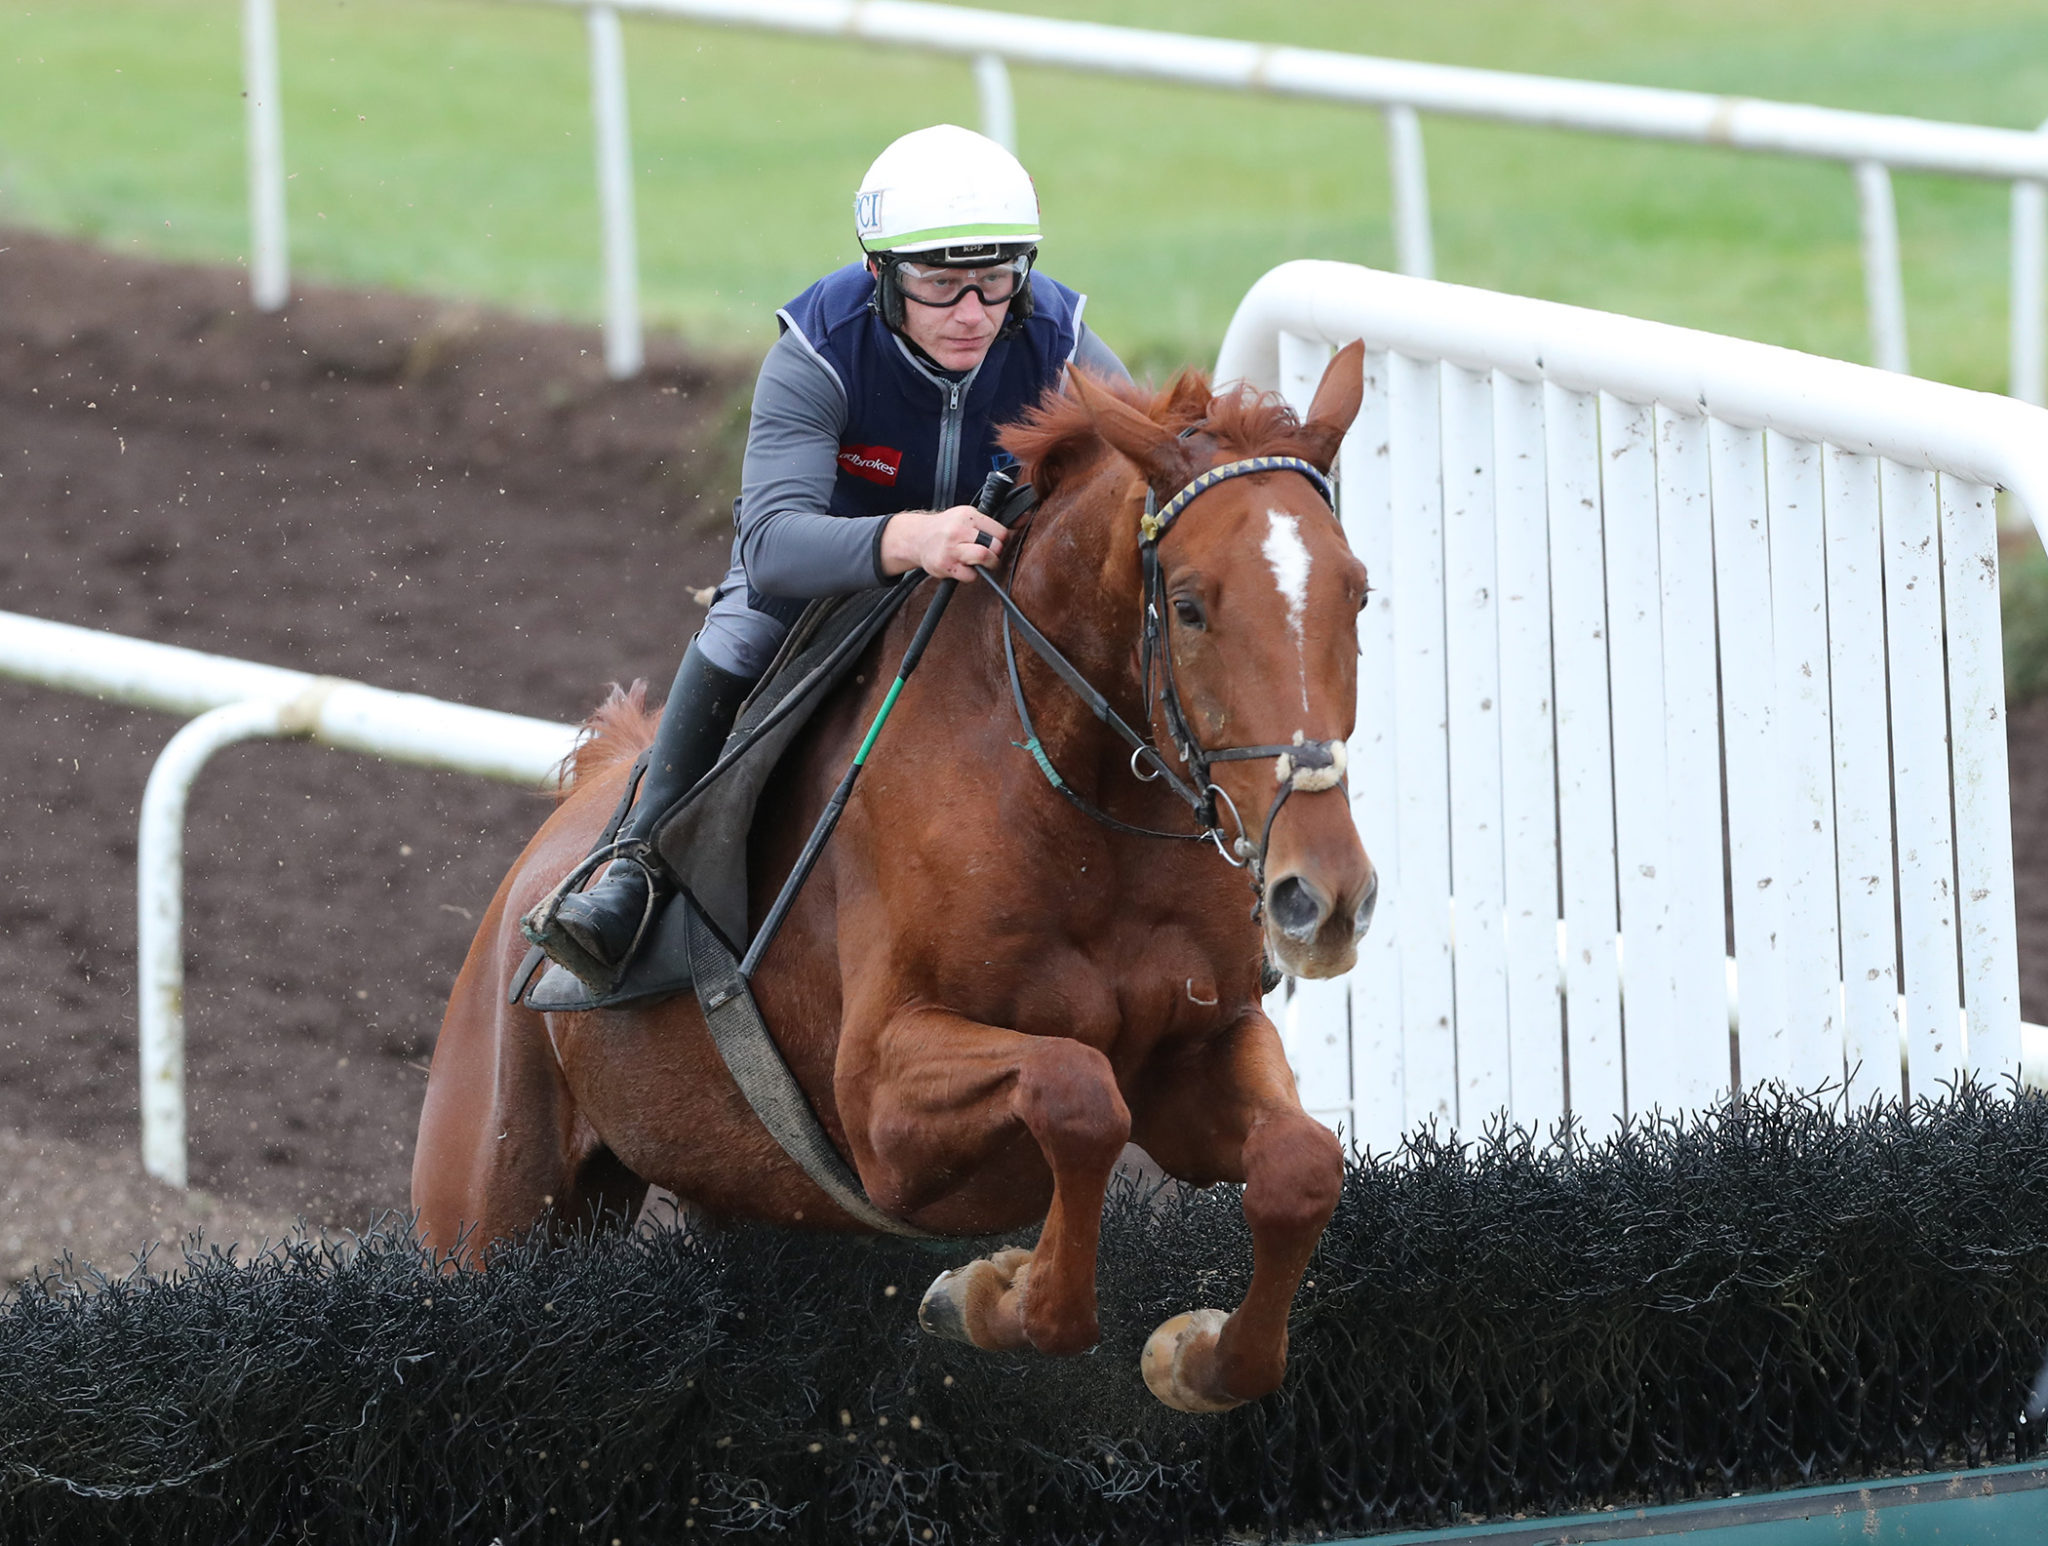 Willie Mullins trained Monkfish